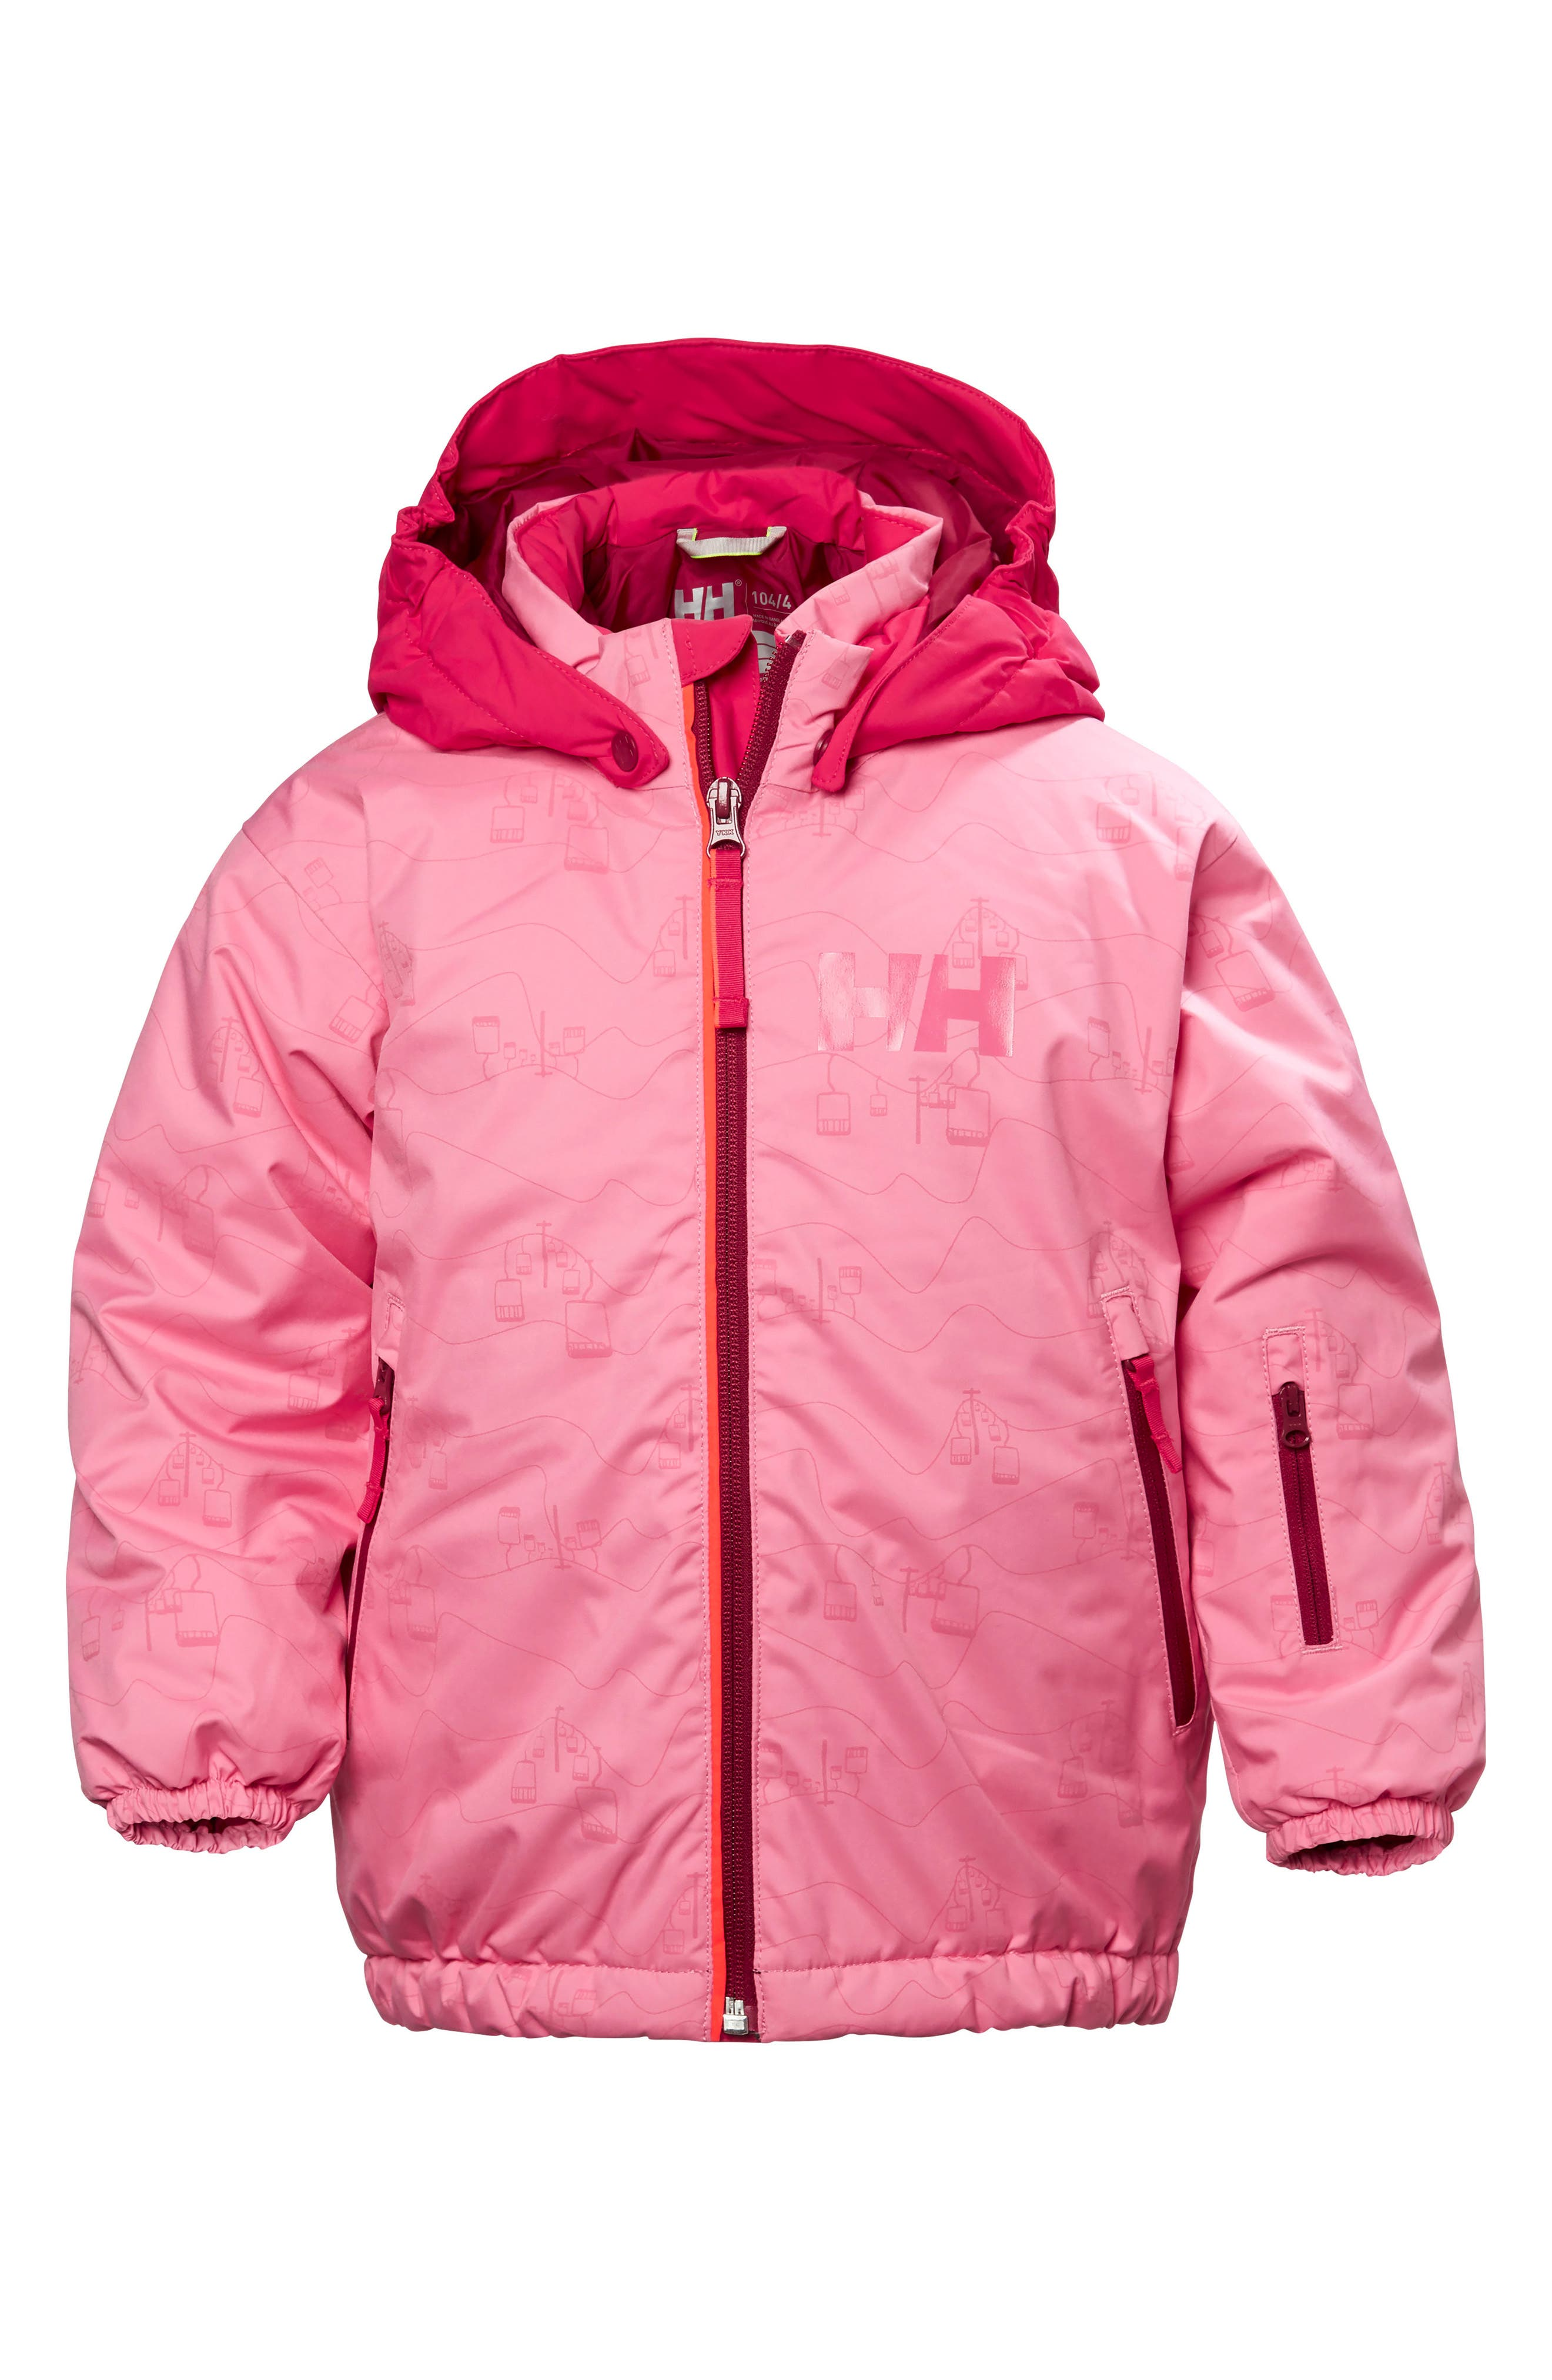 Snowfall Waterproof Insulated Jacket,                         Main,                         color, Pink Carnation